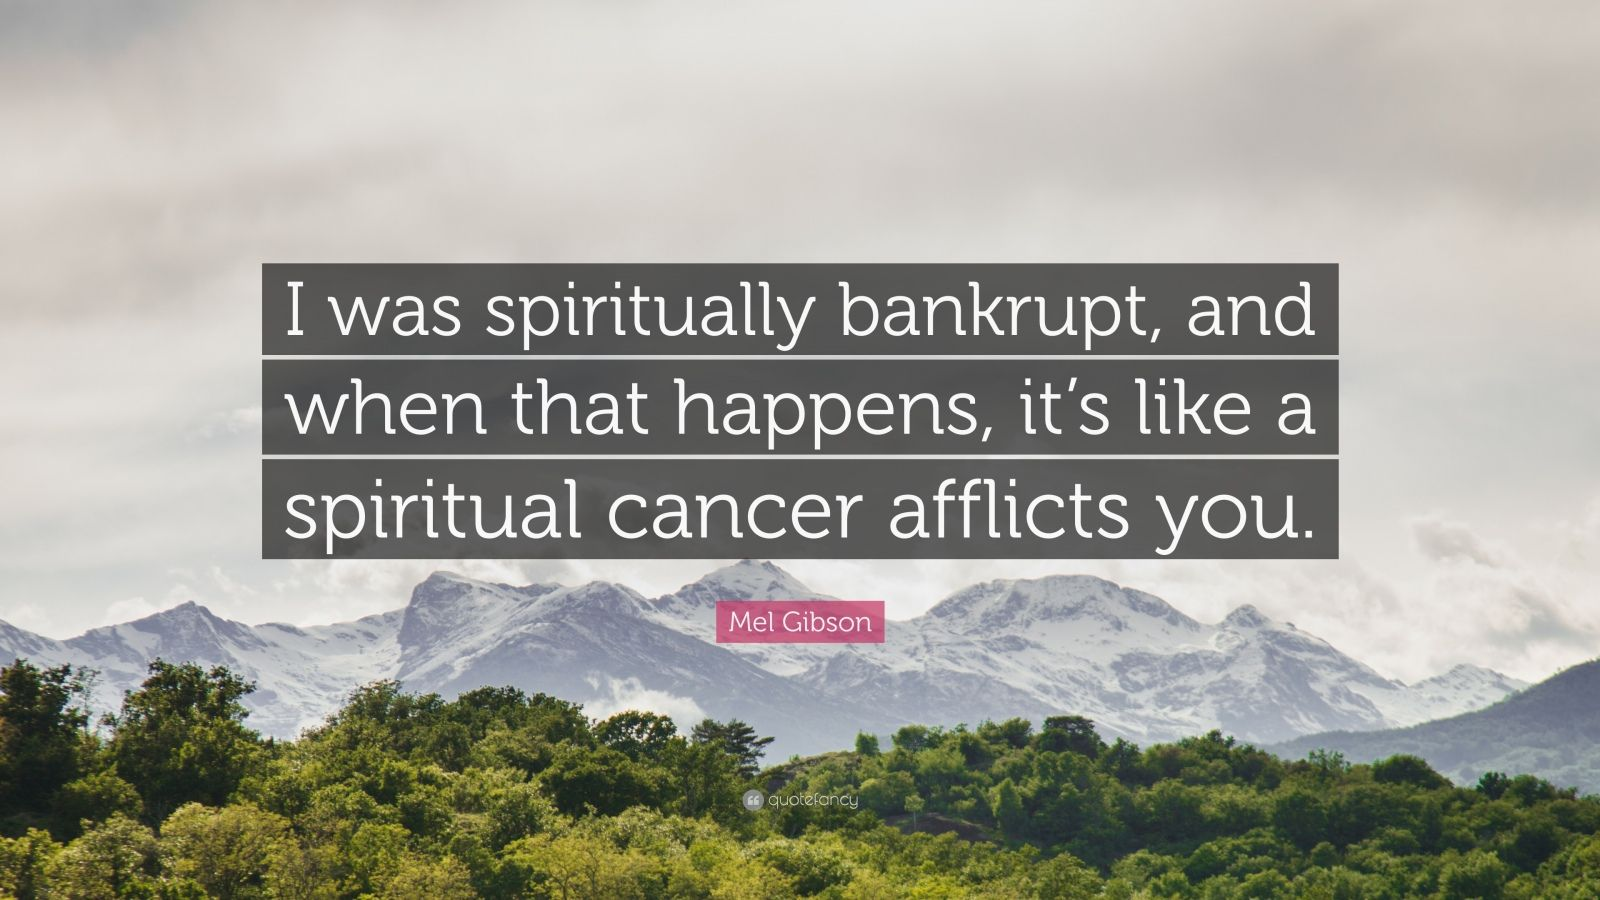 """Mel Gibson Quote: """"I was spiritually bankrupt, and when that happens, it's like a spiritual cancer afflicts you."""""""